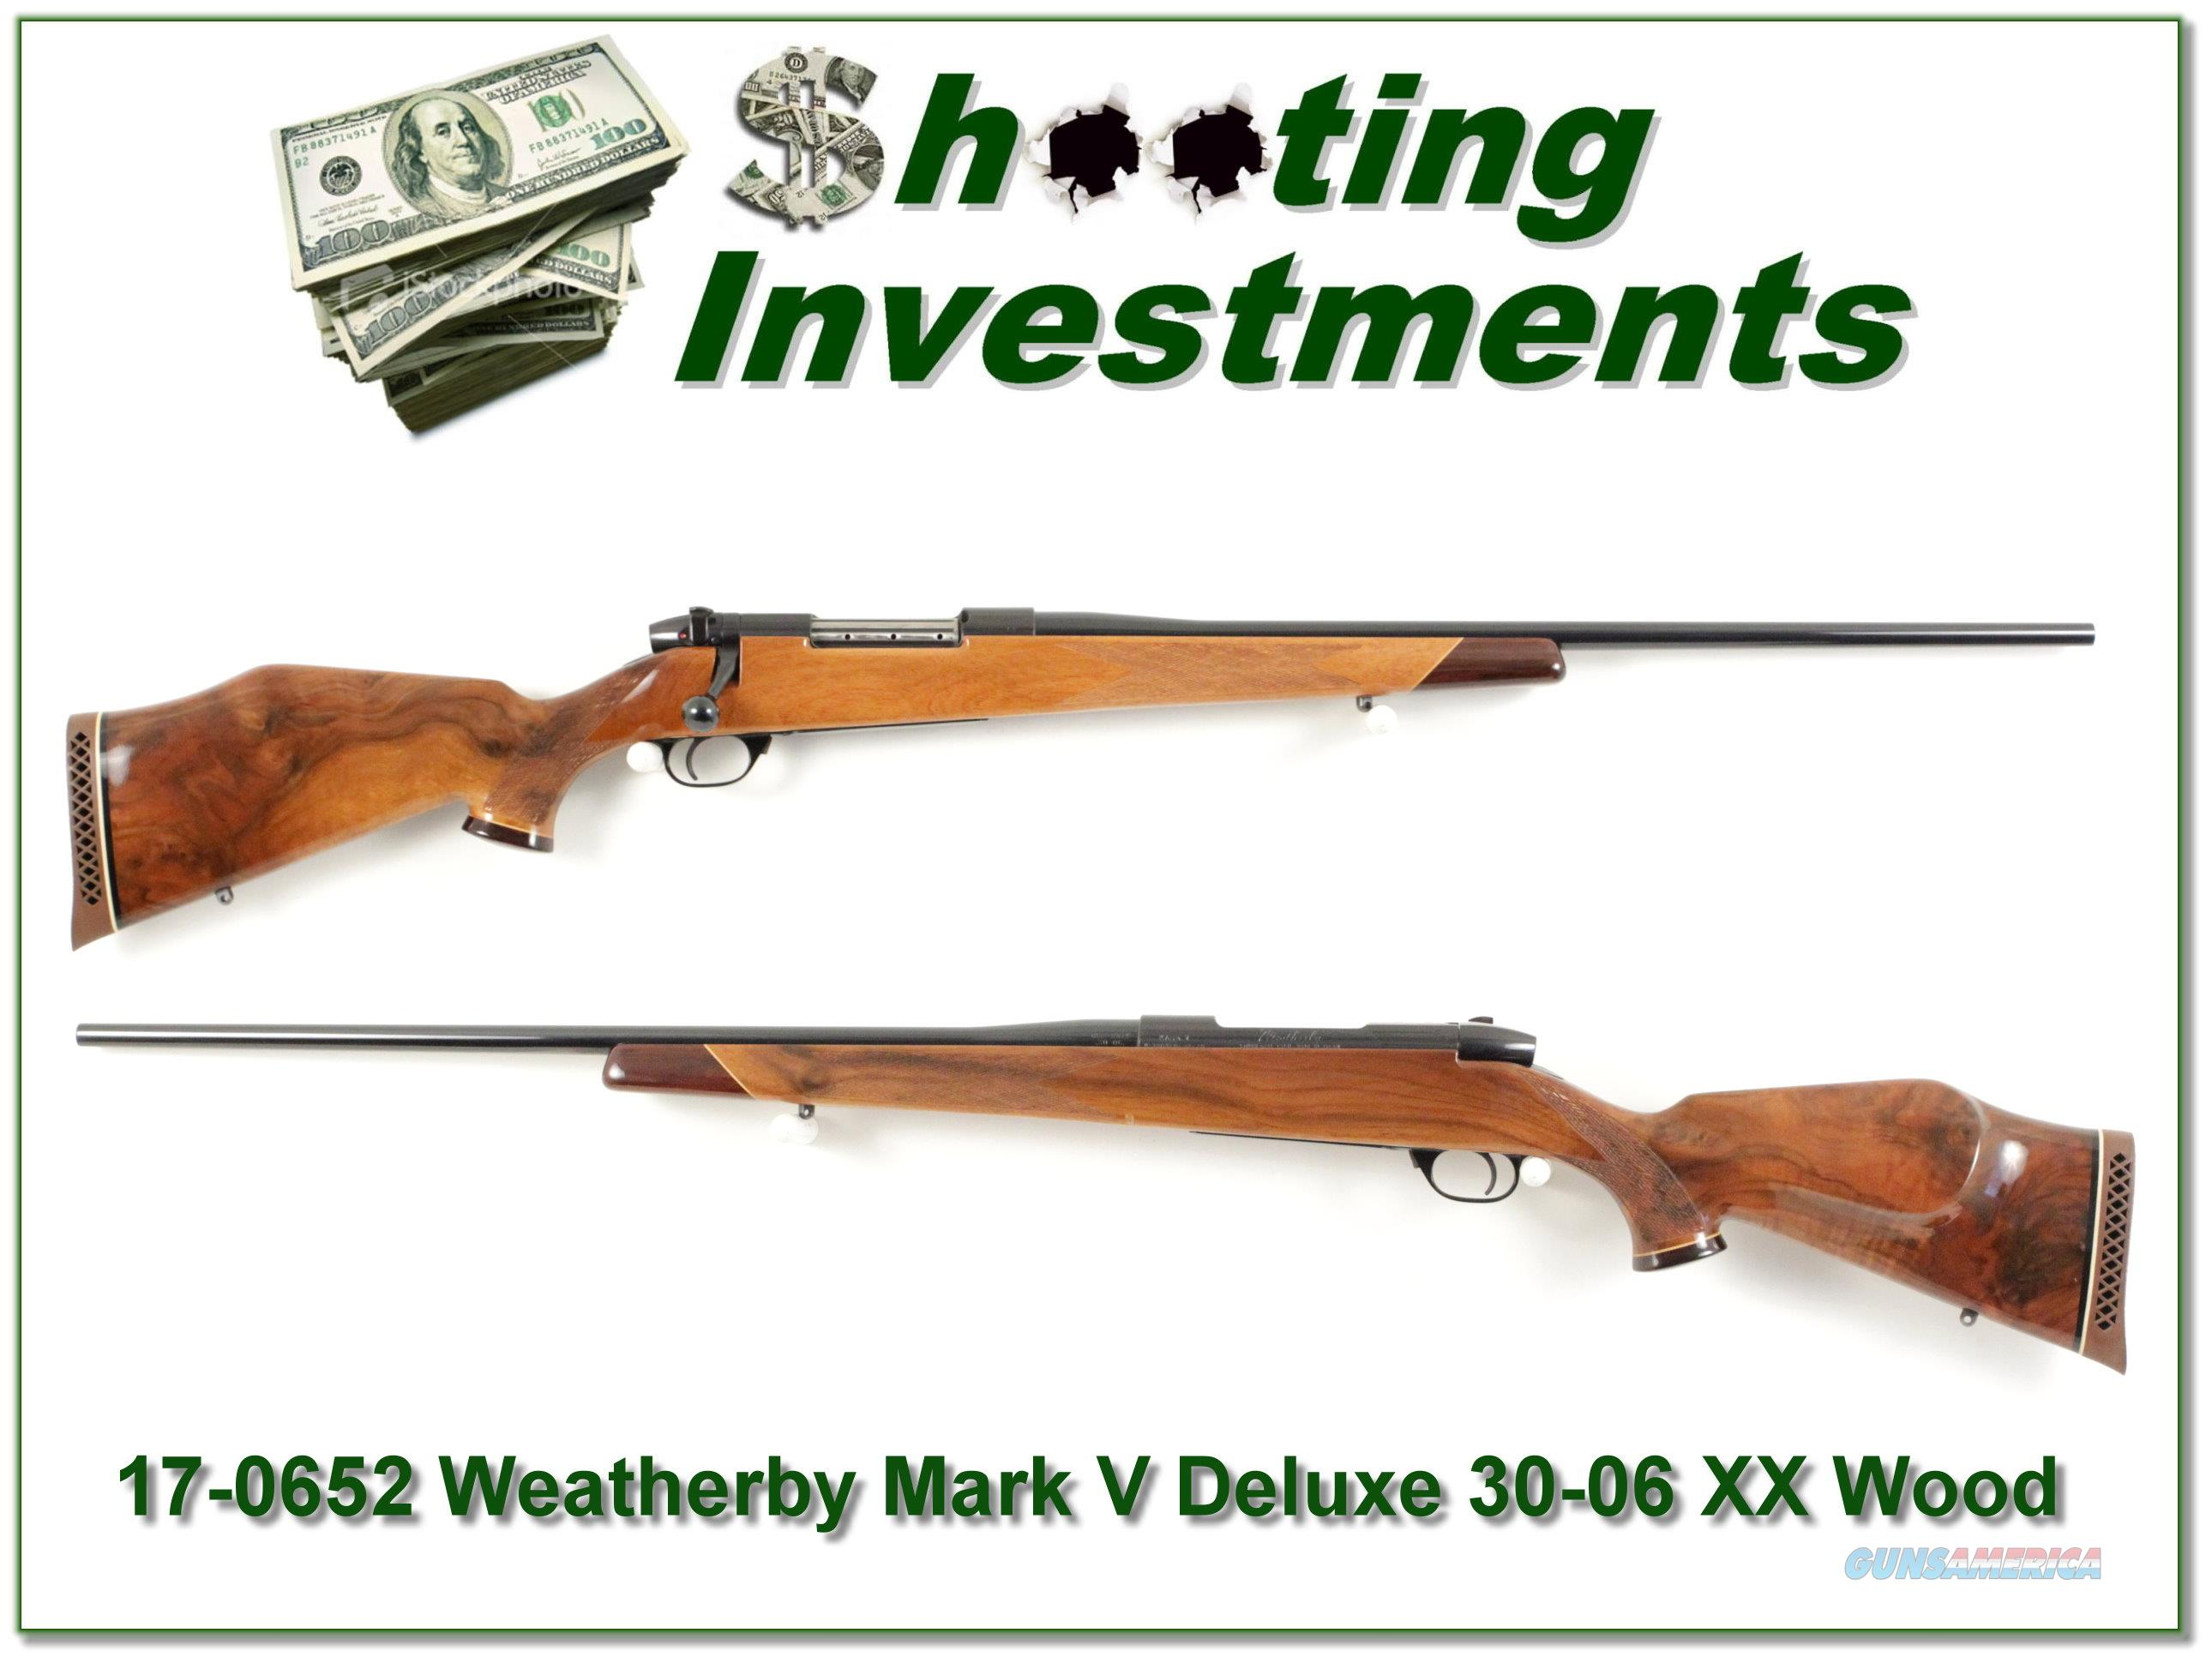 Weatherby Mark V Deluxe 30-06 XX Wood Exc!  Guns > Rifles > Weatherby Rifles > Sporting